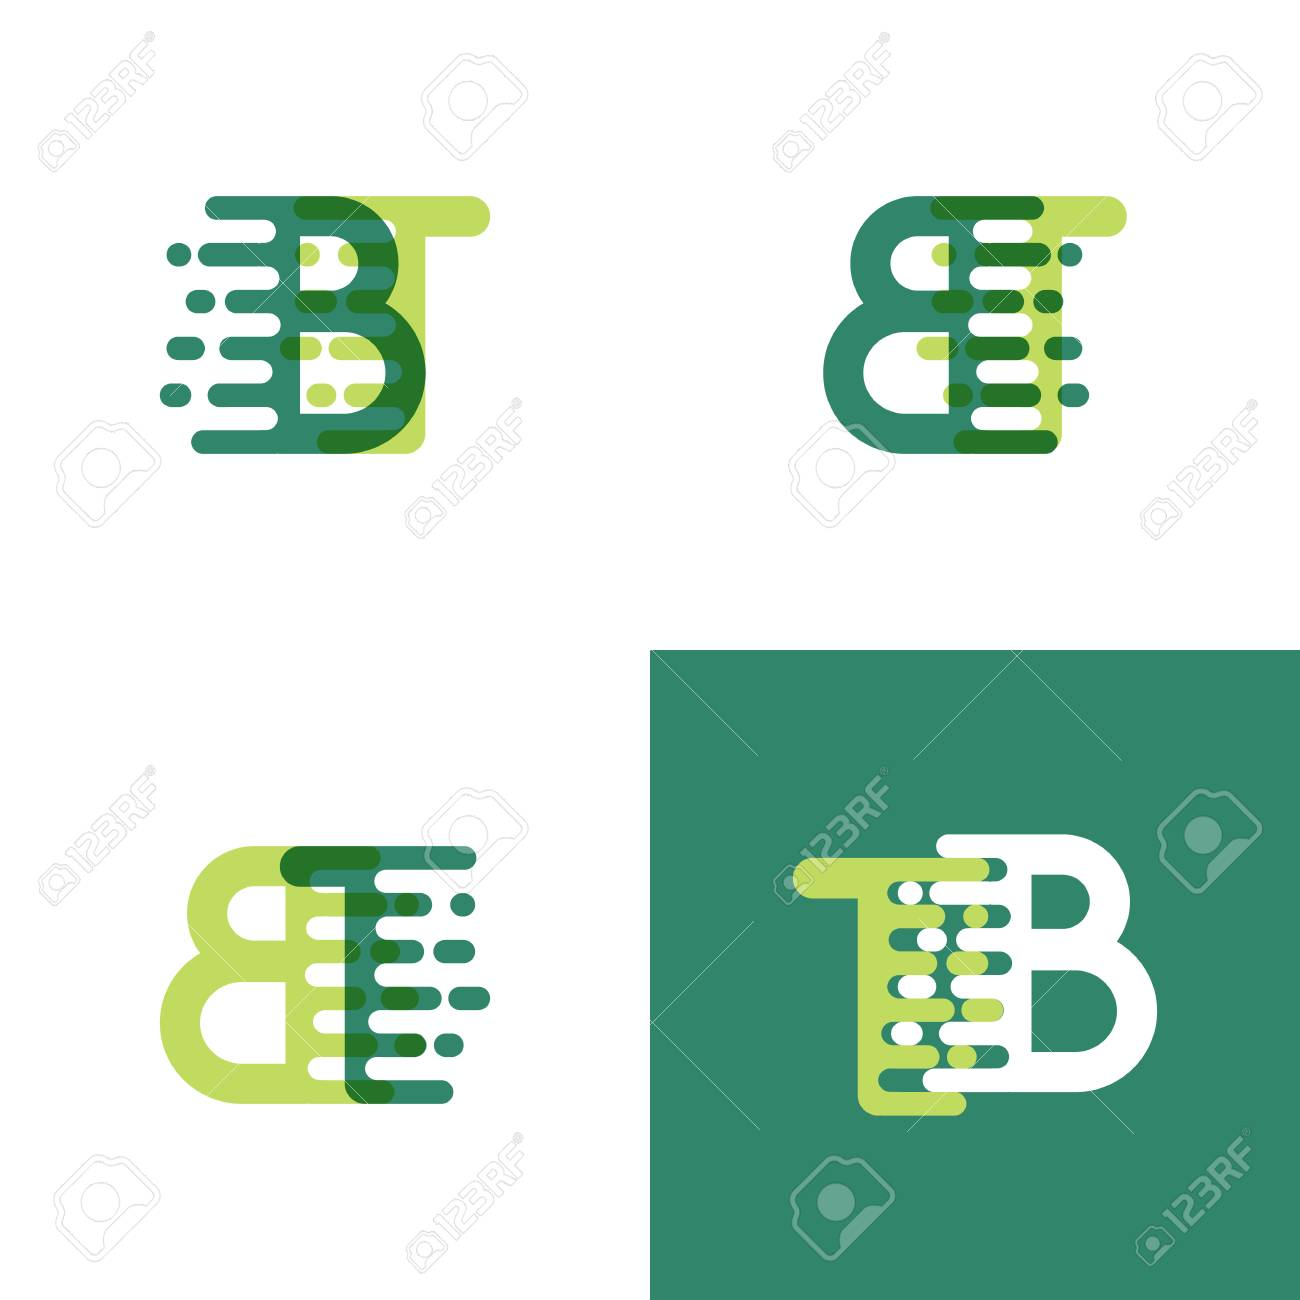 Bt Letters Logo With Accent Speed In Light Green And Dark Green Royalty Free Cliparts Vectors And Stock Illustration Image 99020431